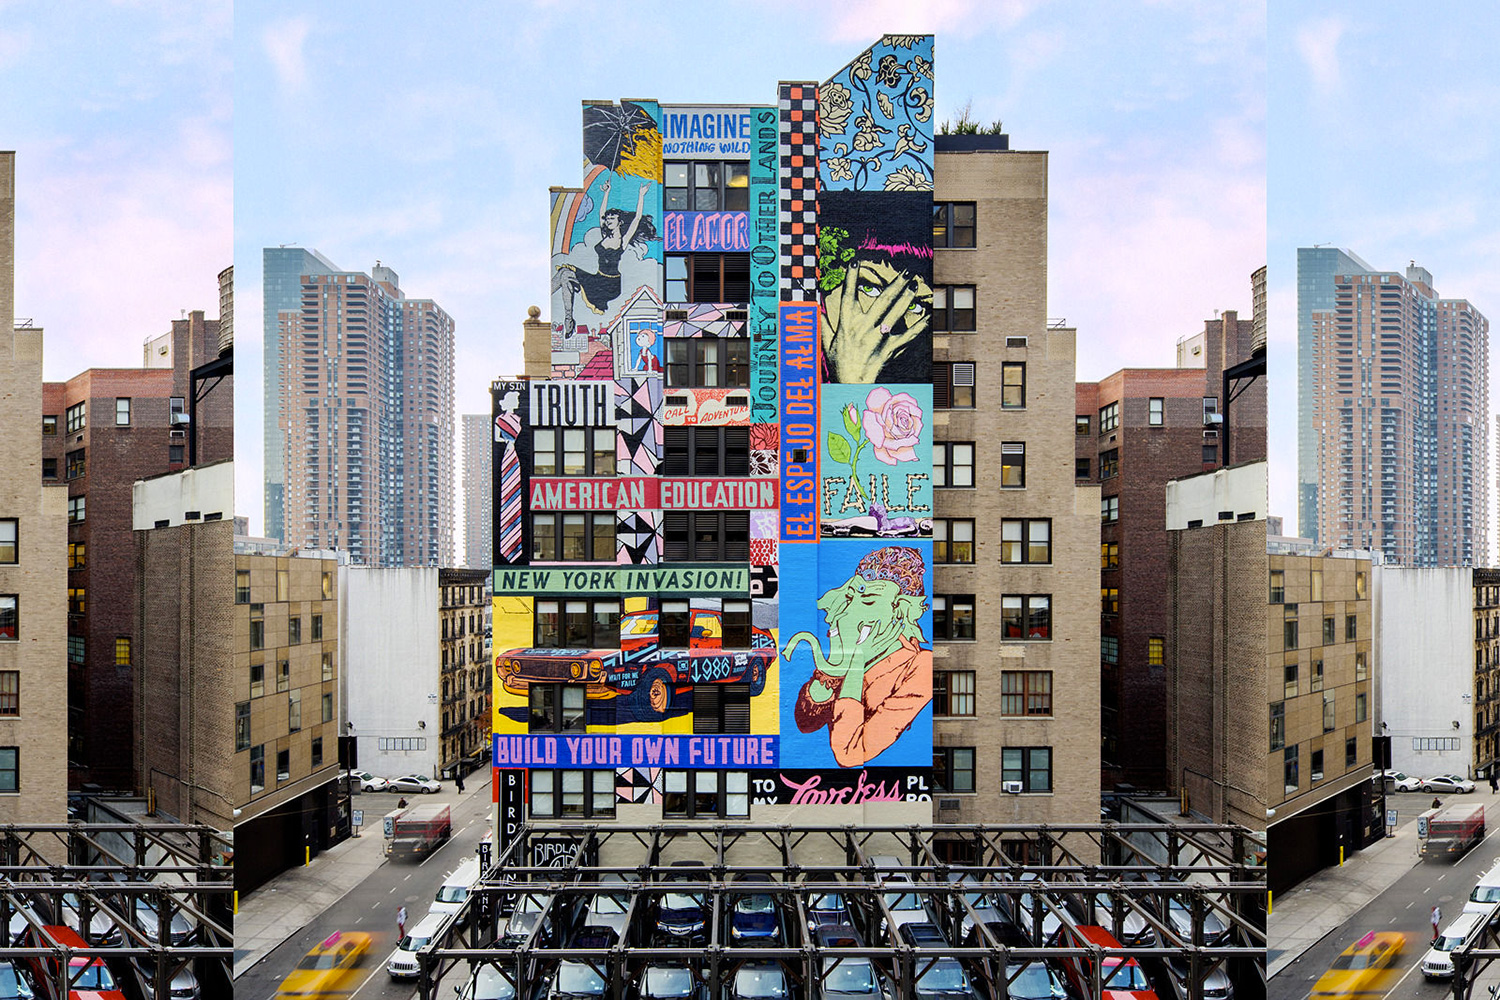 Faile-mural-The-Plant---Times-Square-New-York,-NY-2013-Photo-Courtesy-of-SGM-Photography